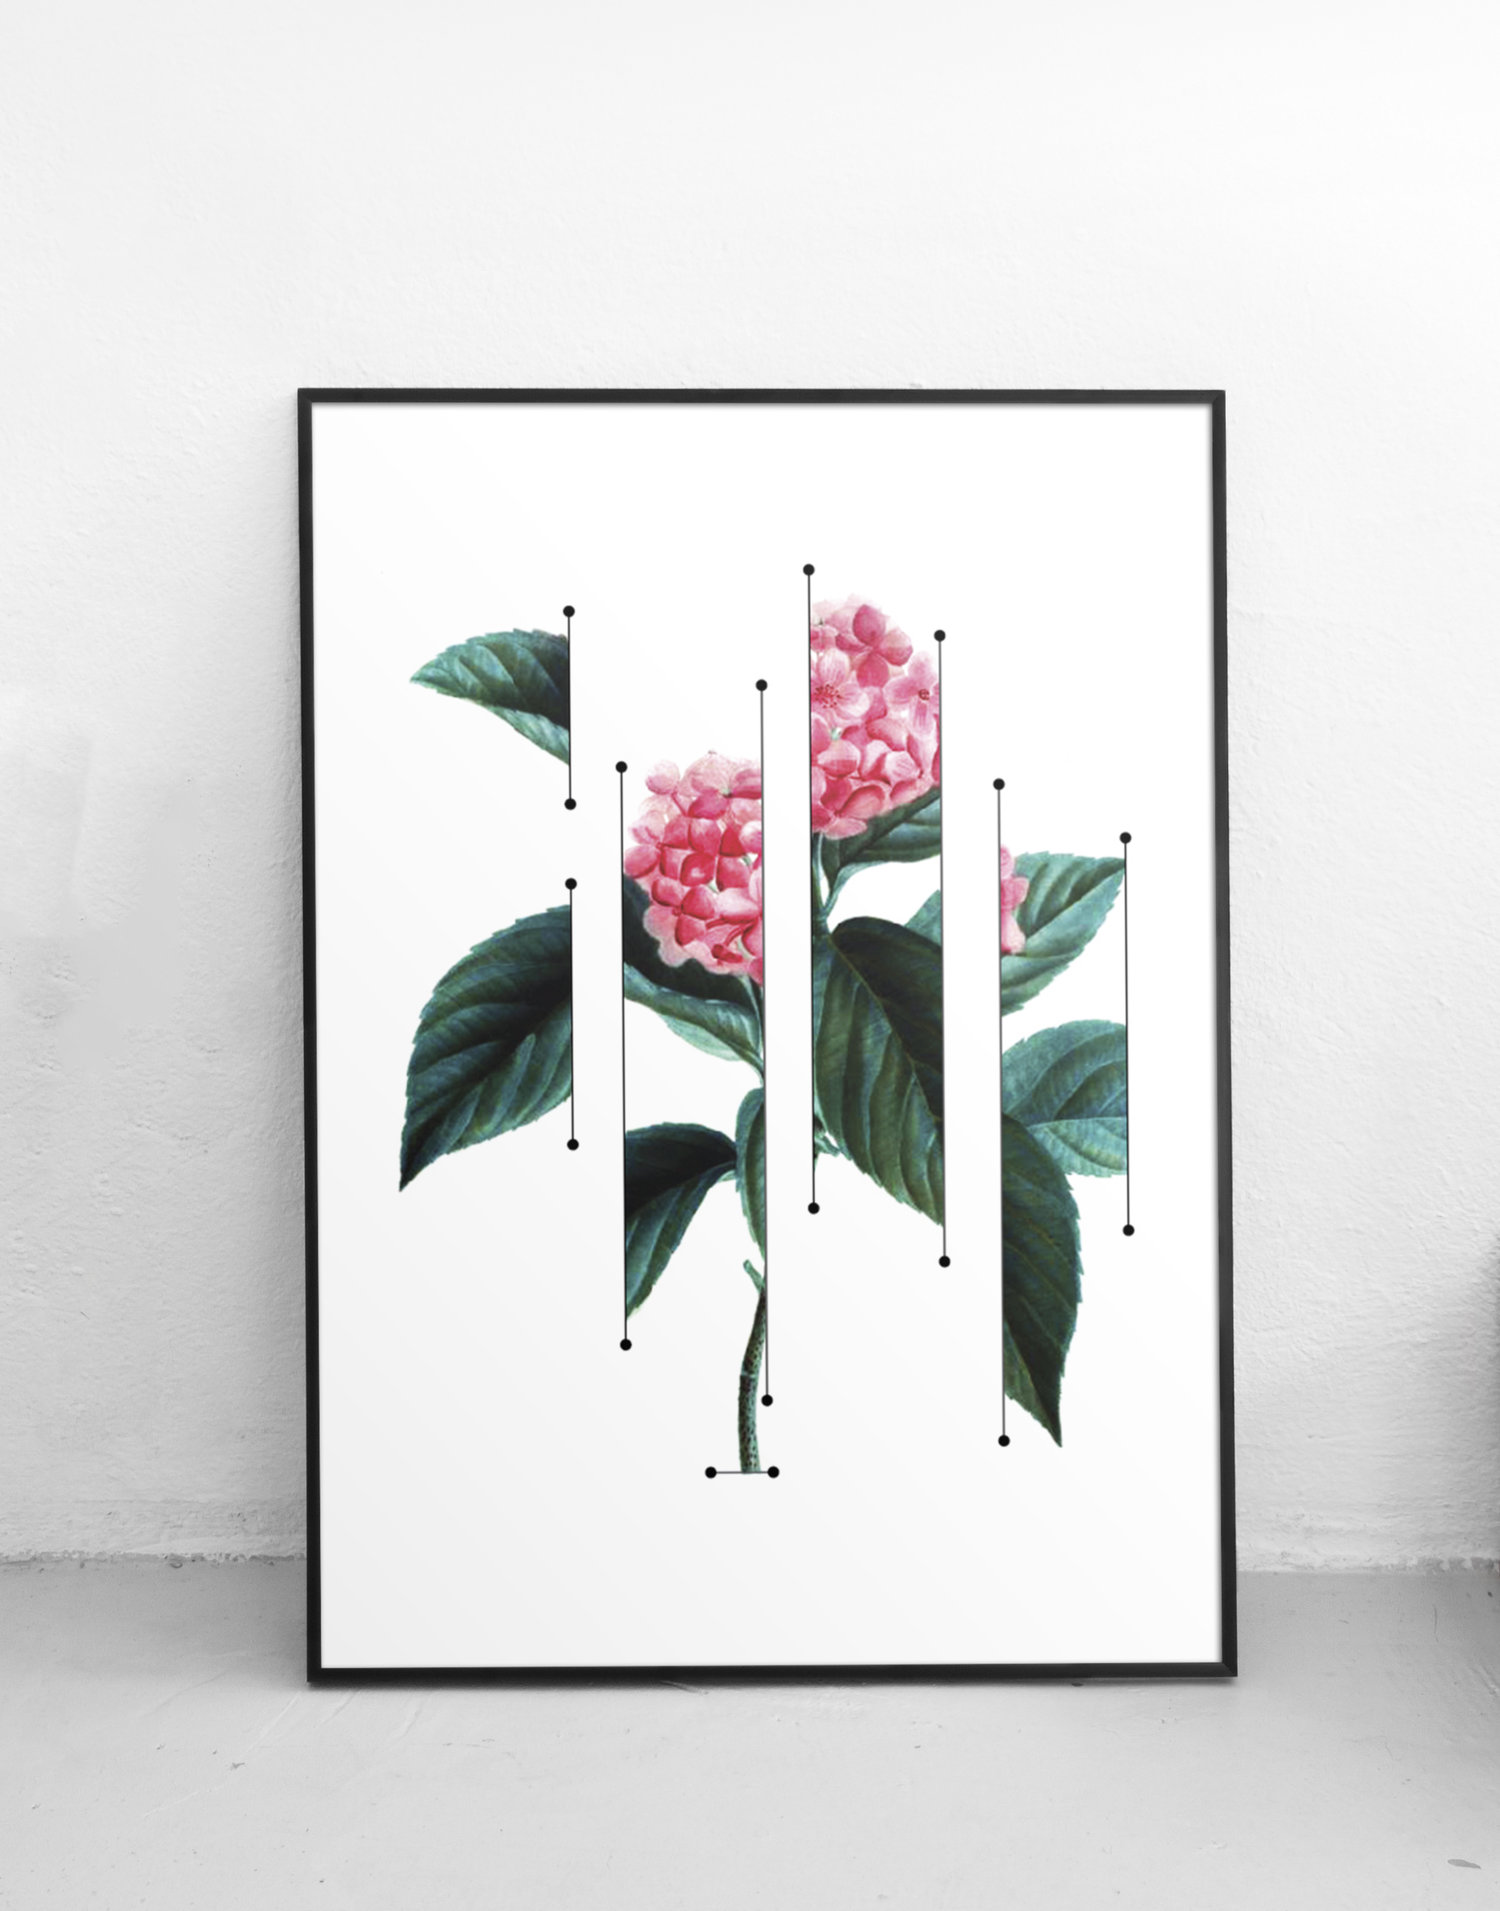 Floral screenprint